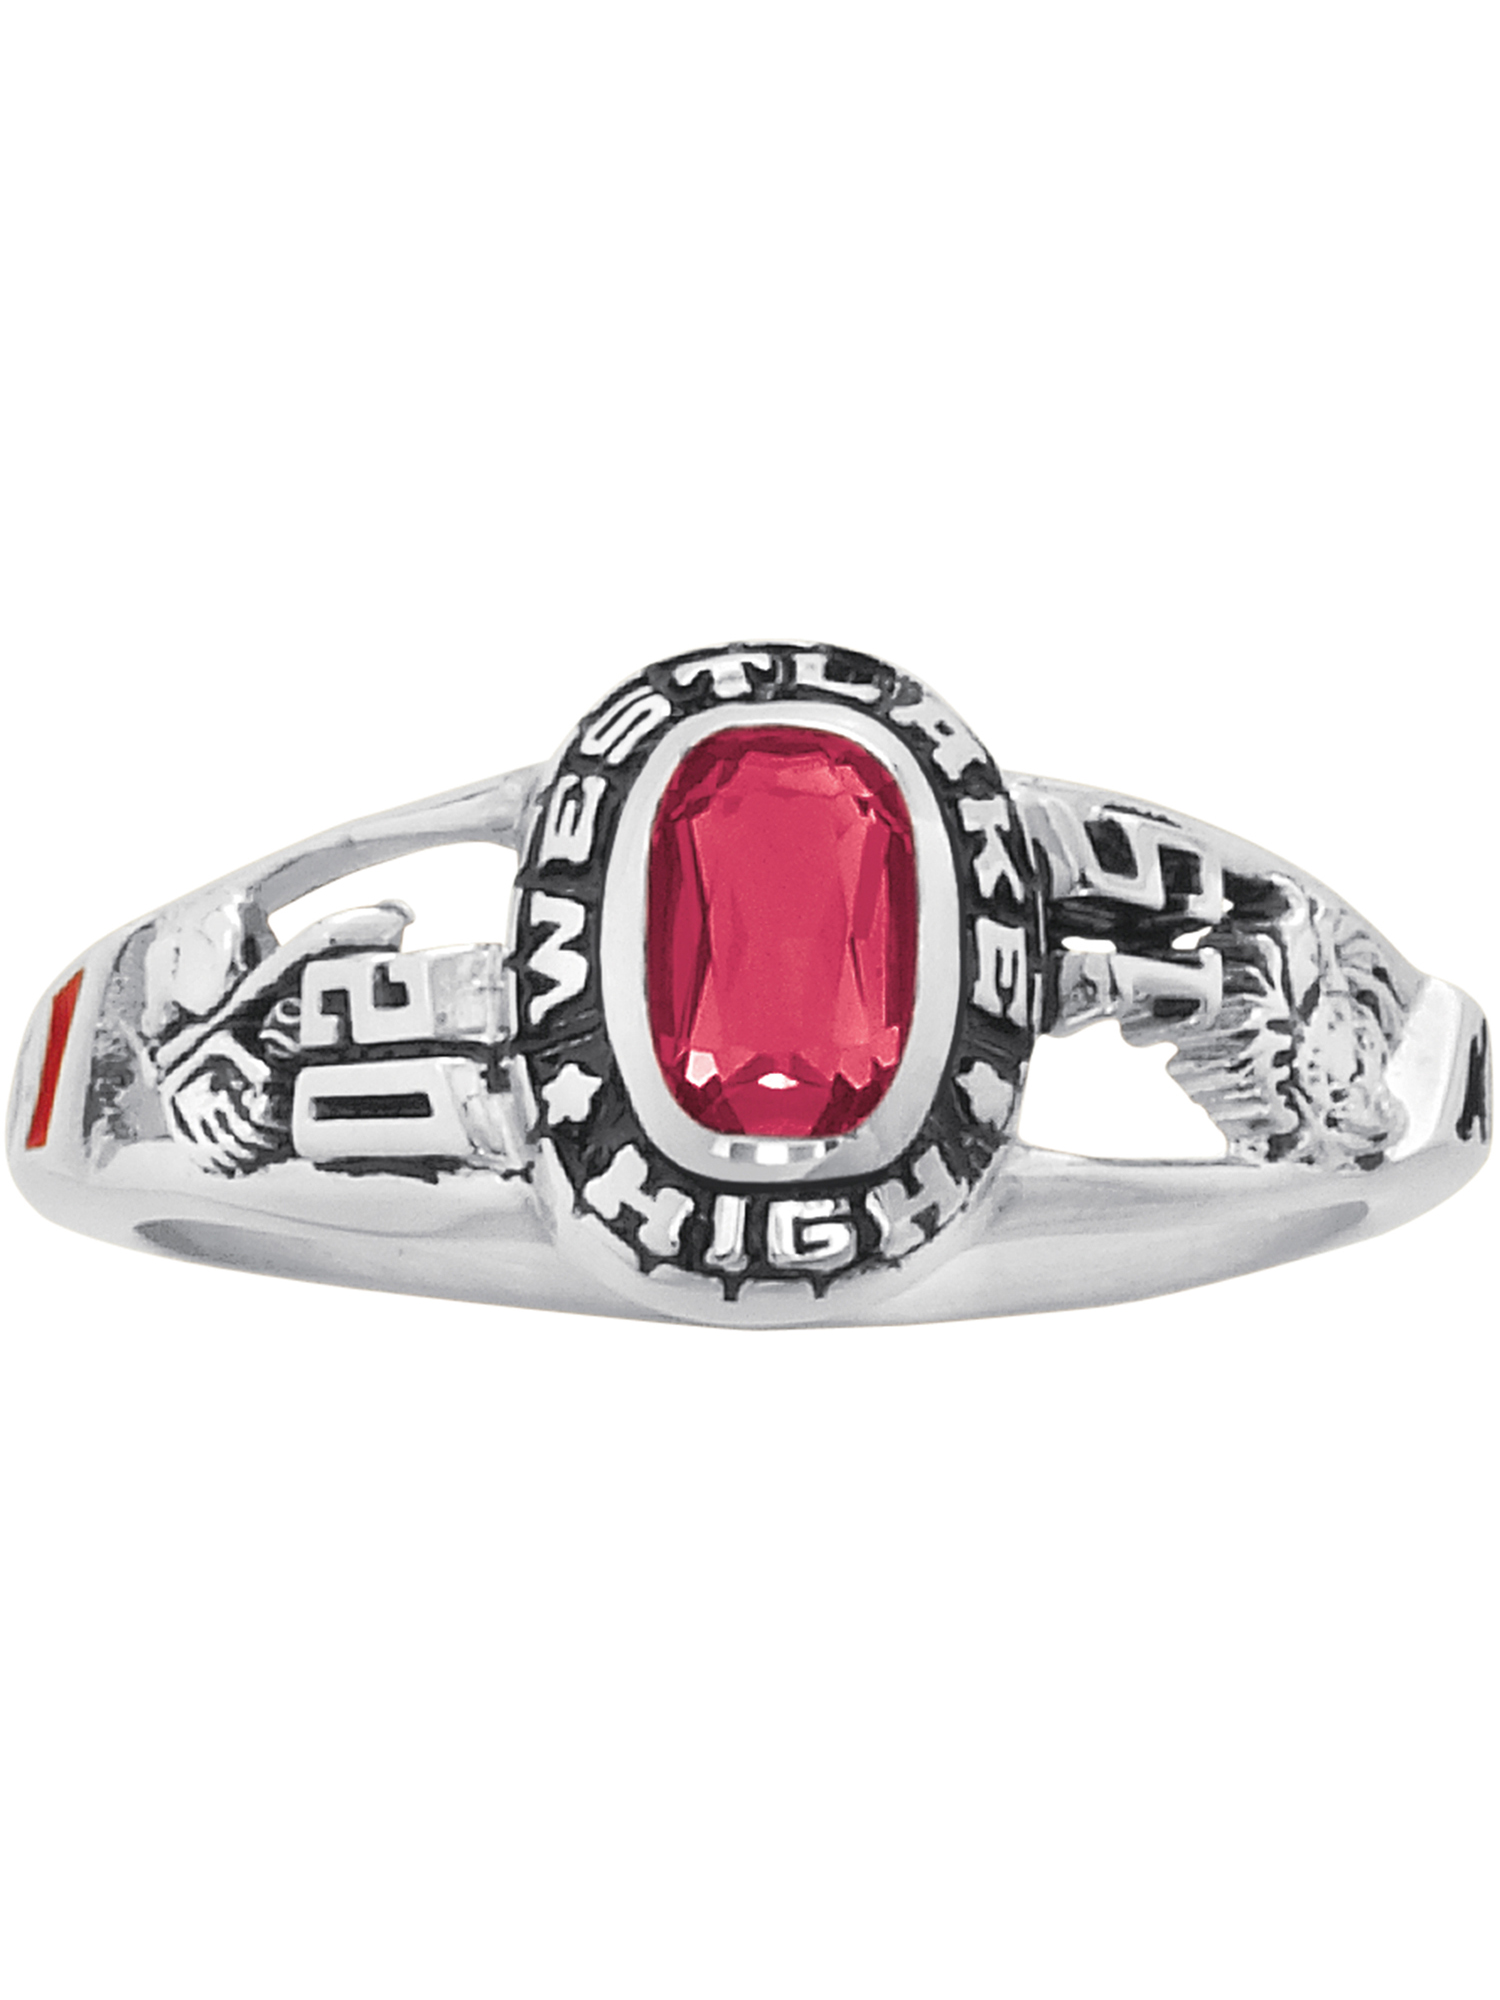 Keepsake Personalized Women's Viva Fashion Class Ring available in Valadium Metals, Silver Plus, and Yellow and White Gold